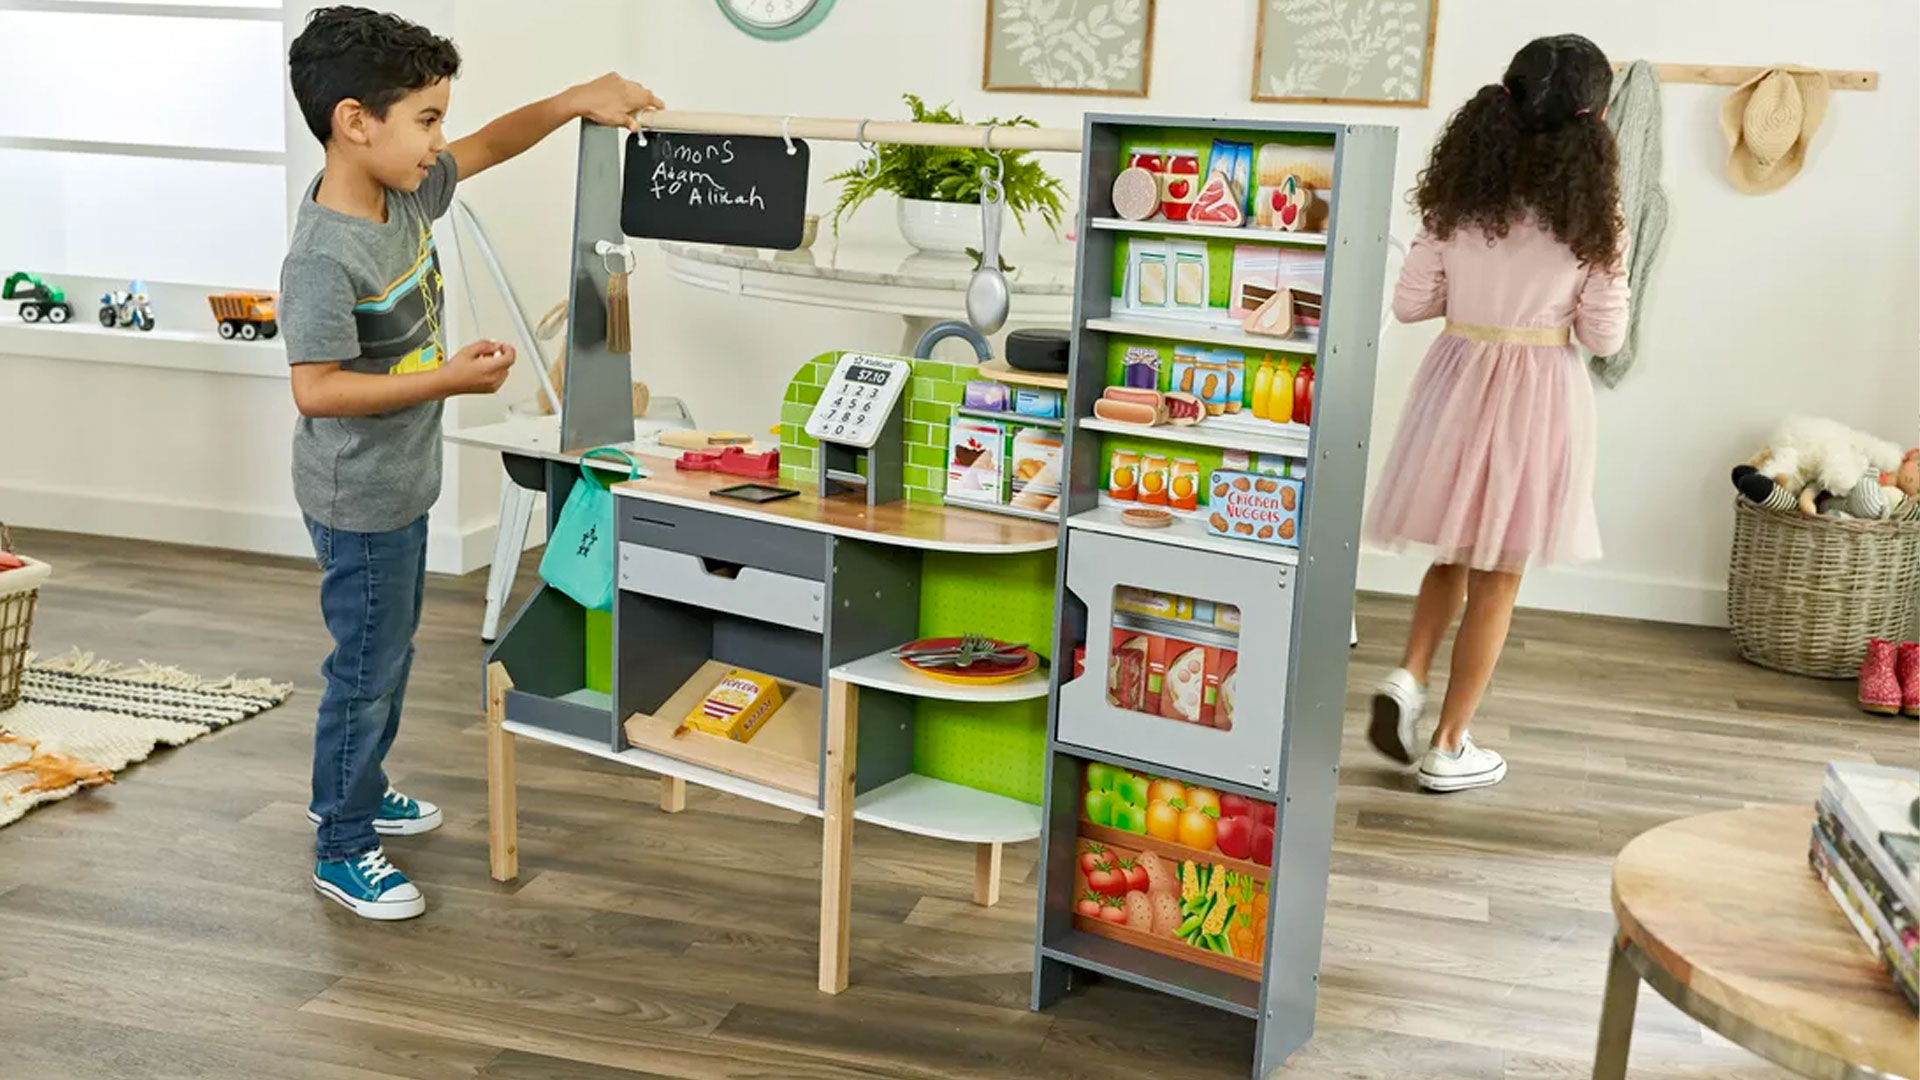 KidKraft and Amazon launch an Alexa-enabled kids kitchen - 9to5Toys